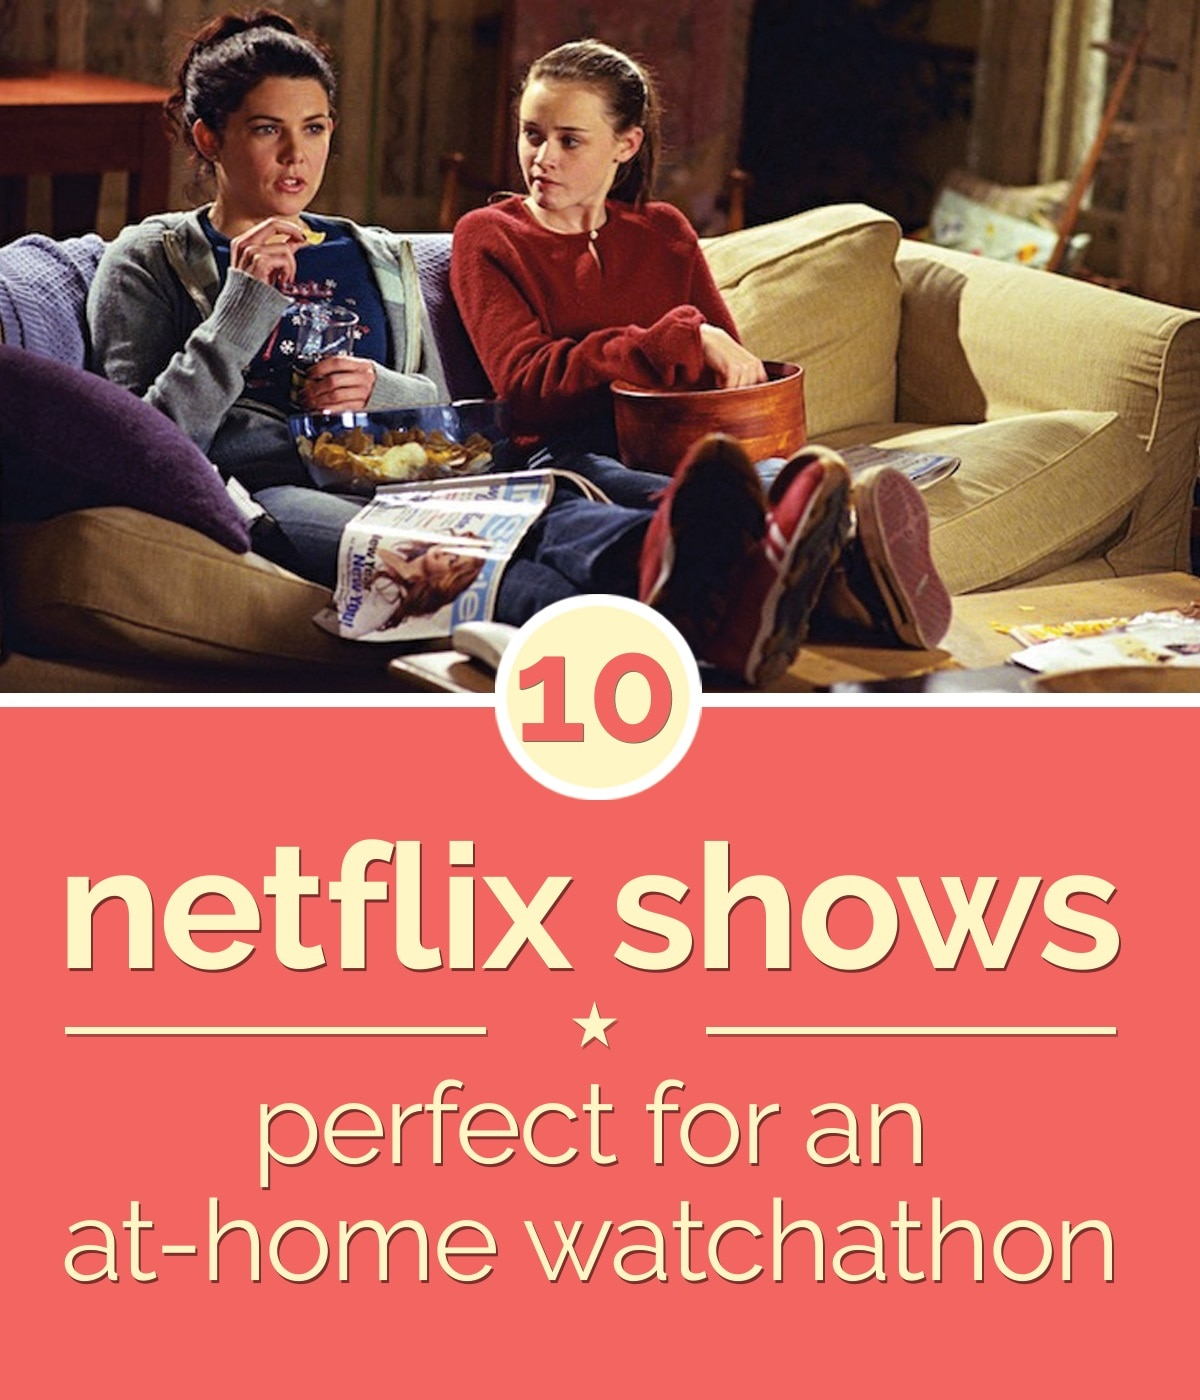 10 netflix shows perfect for an at home watchathon - Home shows on netflix ...